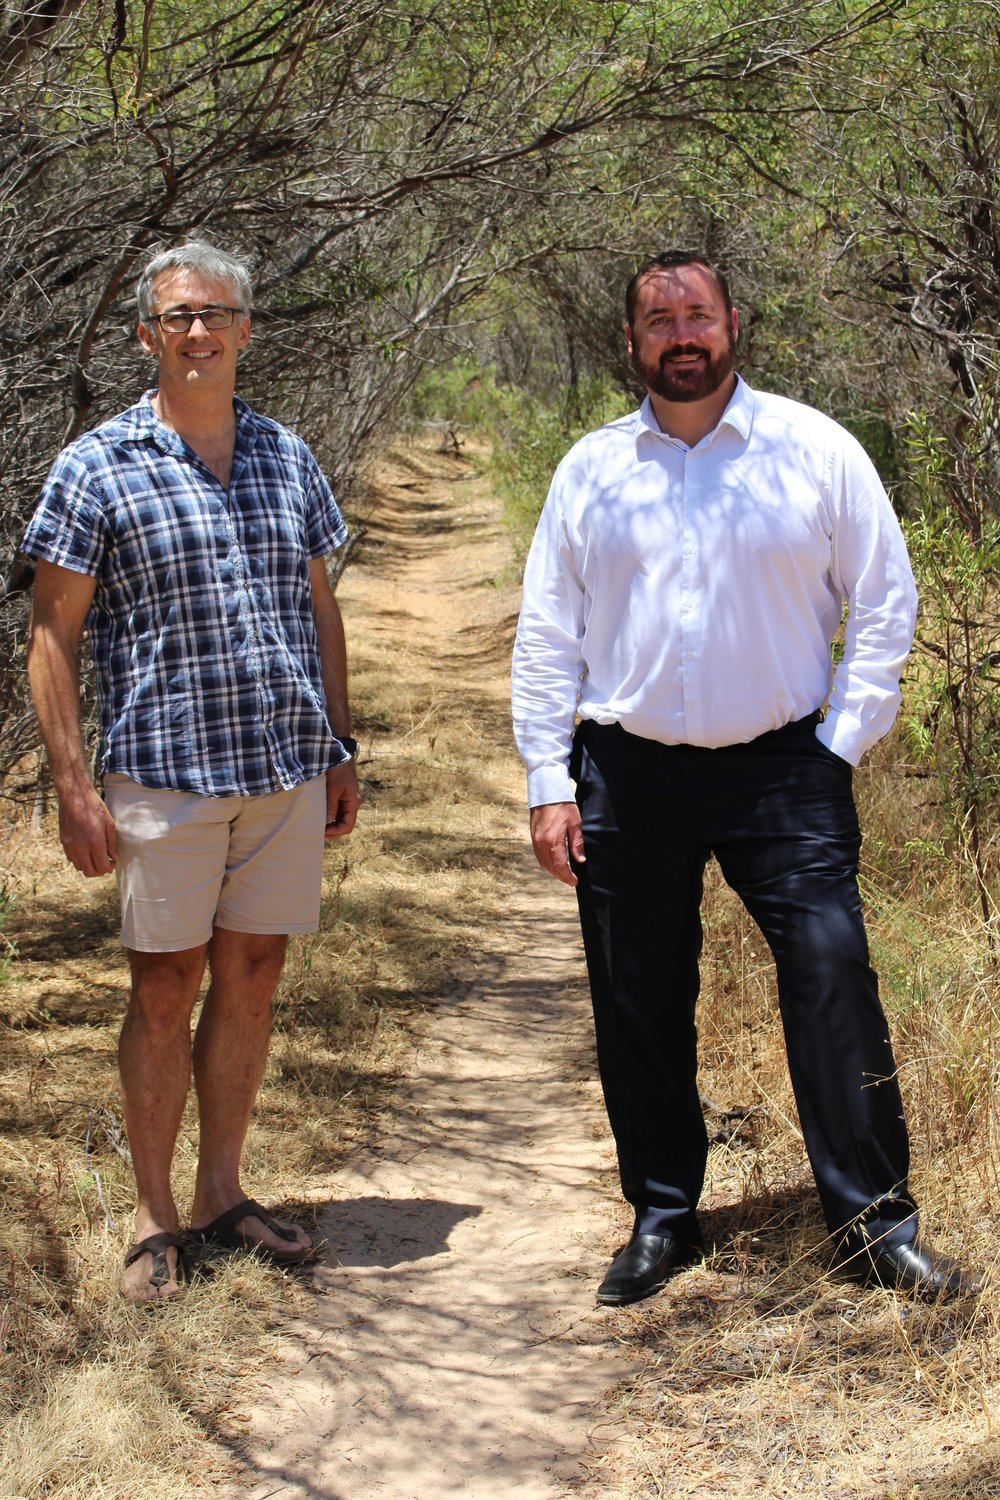 Geraldton Mountain Bike Club President Paul Spackman and City of Greater Geraldton Mayor Shane Van Styn at the existing mountain bike trail in Chapman River Regional Park which could be formalised as part of the City's Mountain Bike Master Plan.